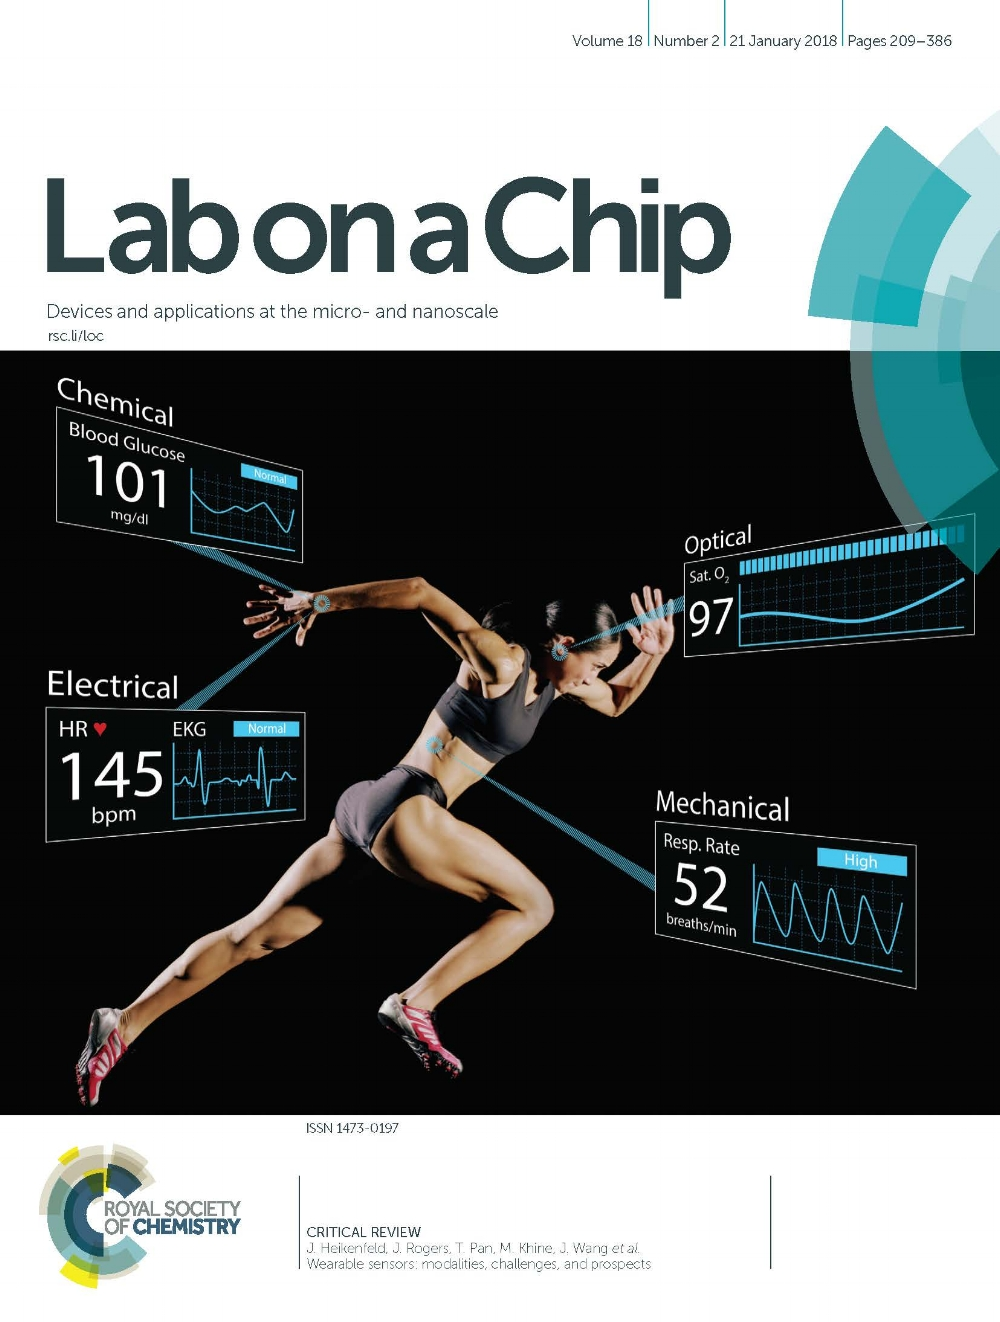 Lab on a Chip-Image.jpg